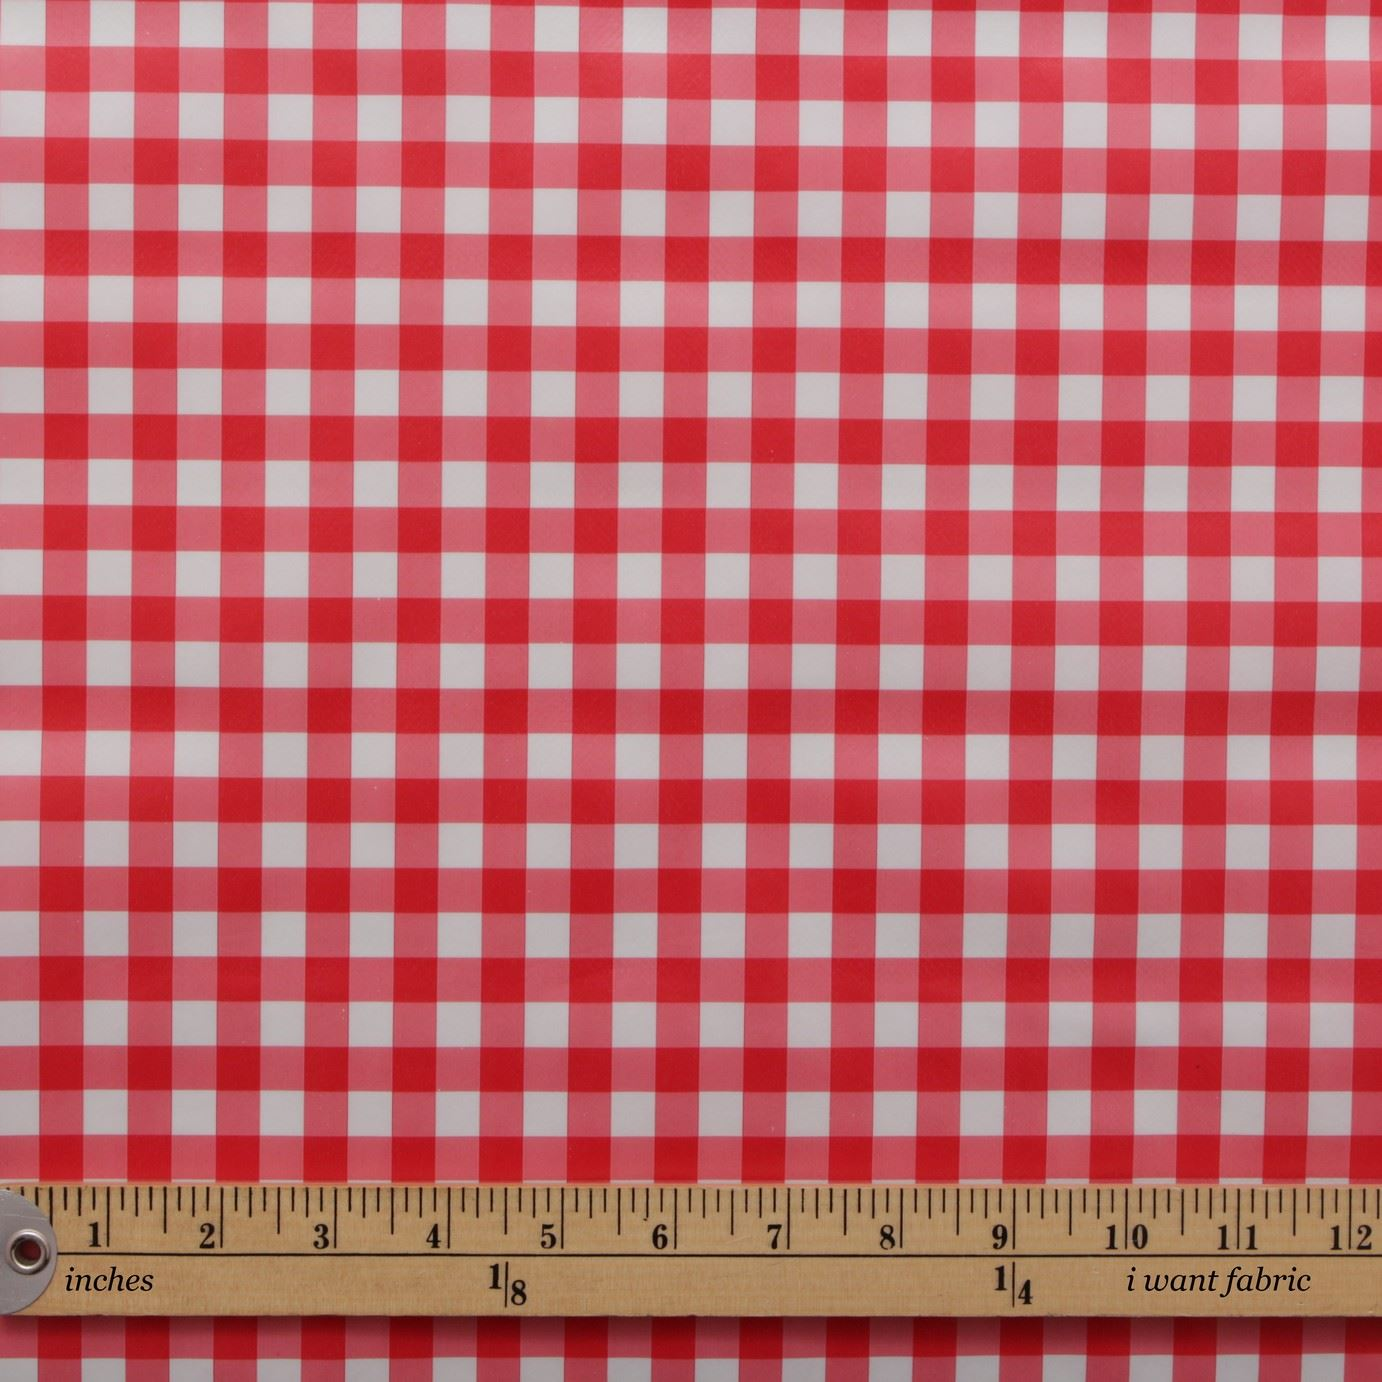 FLORAL-GINGHAM-POLKA-DOT-PRINT-PVC-COATED-COVERING-TABLECLOTH-OILCLOTH-FABRIC